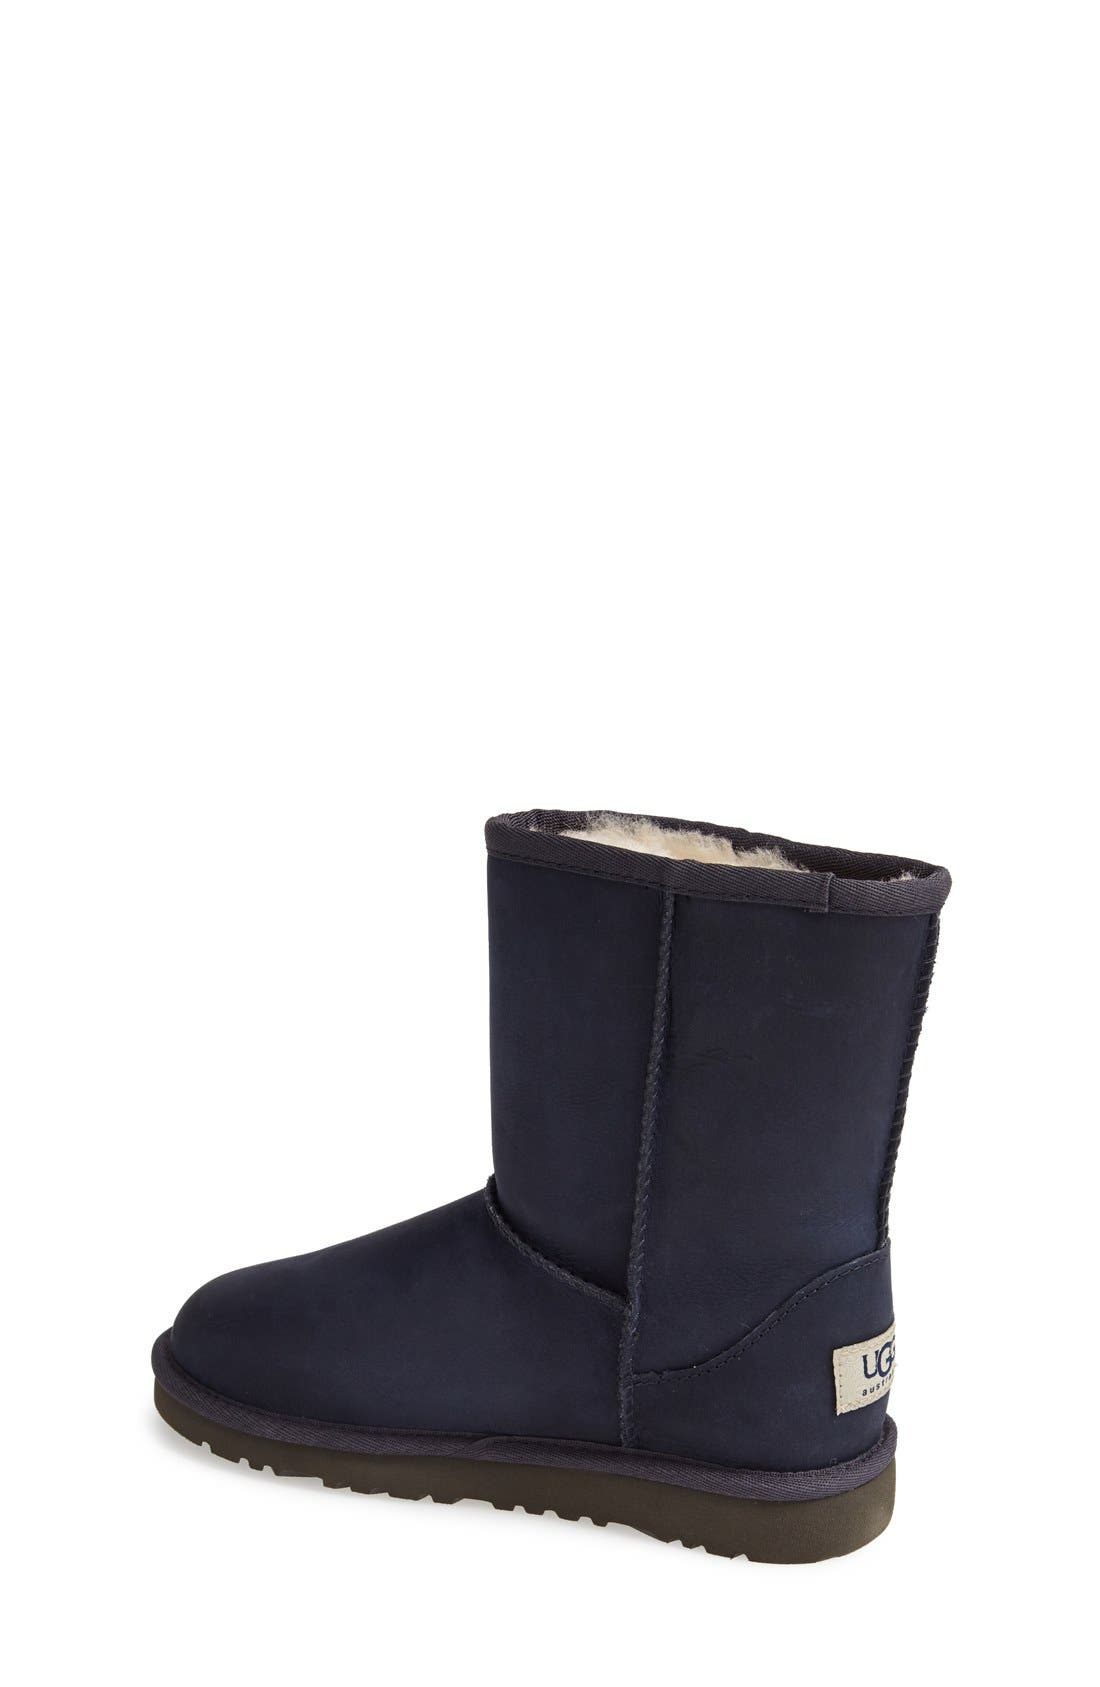 Alternate Image 2  - UGG® Classic Short Water Resistant Leather Boot (Little Kid & Big Kid)